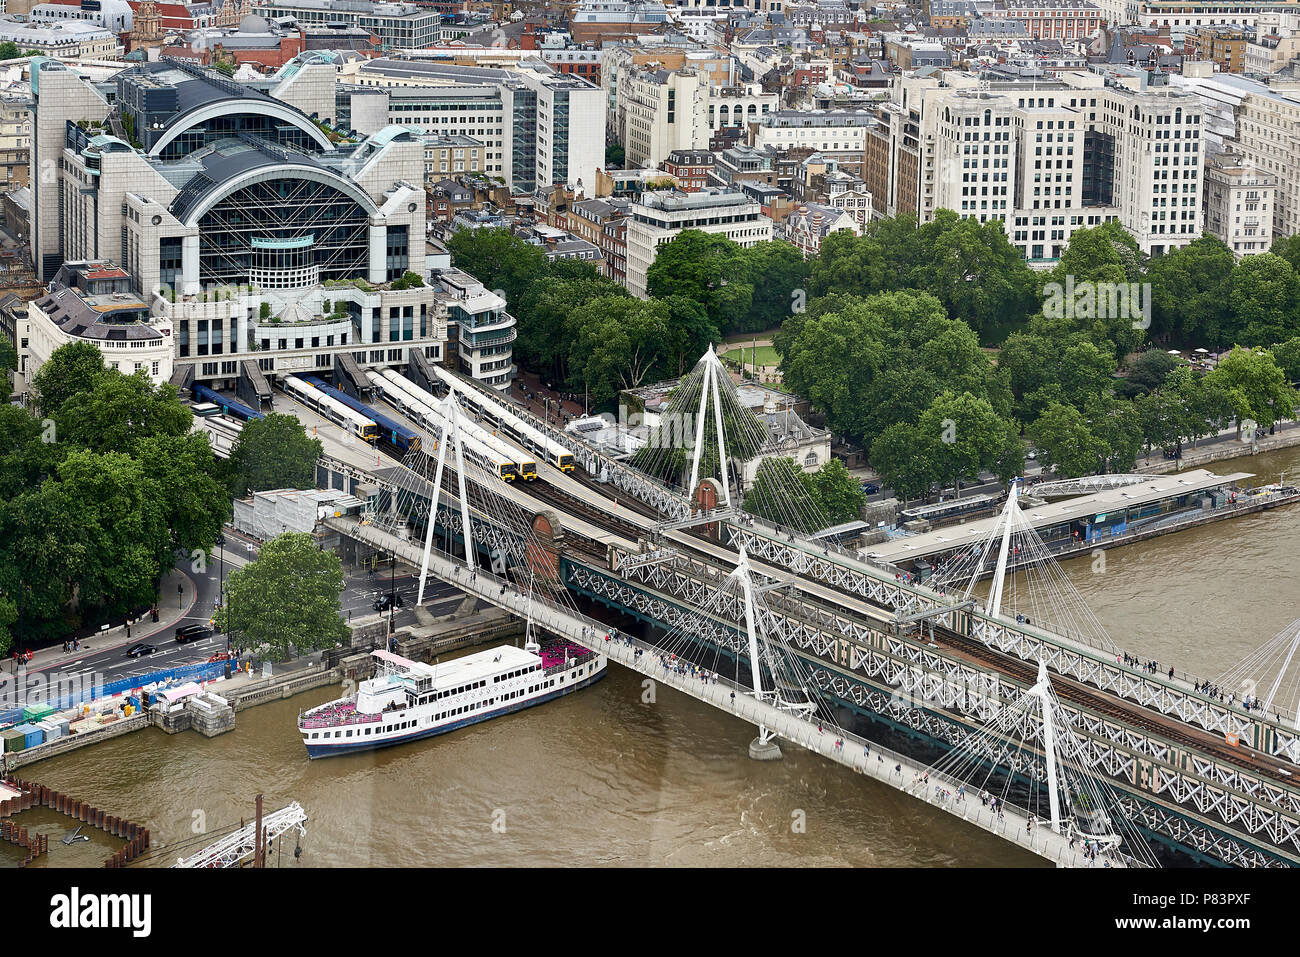 Charing cross train station arial view - Stock Image